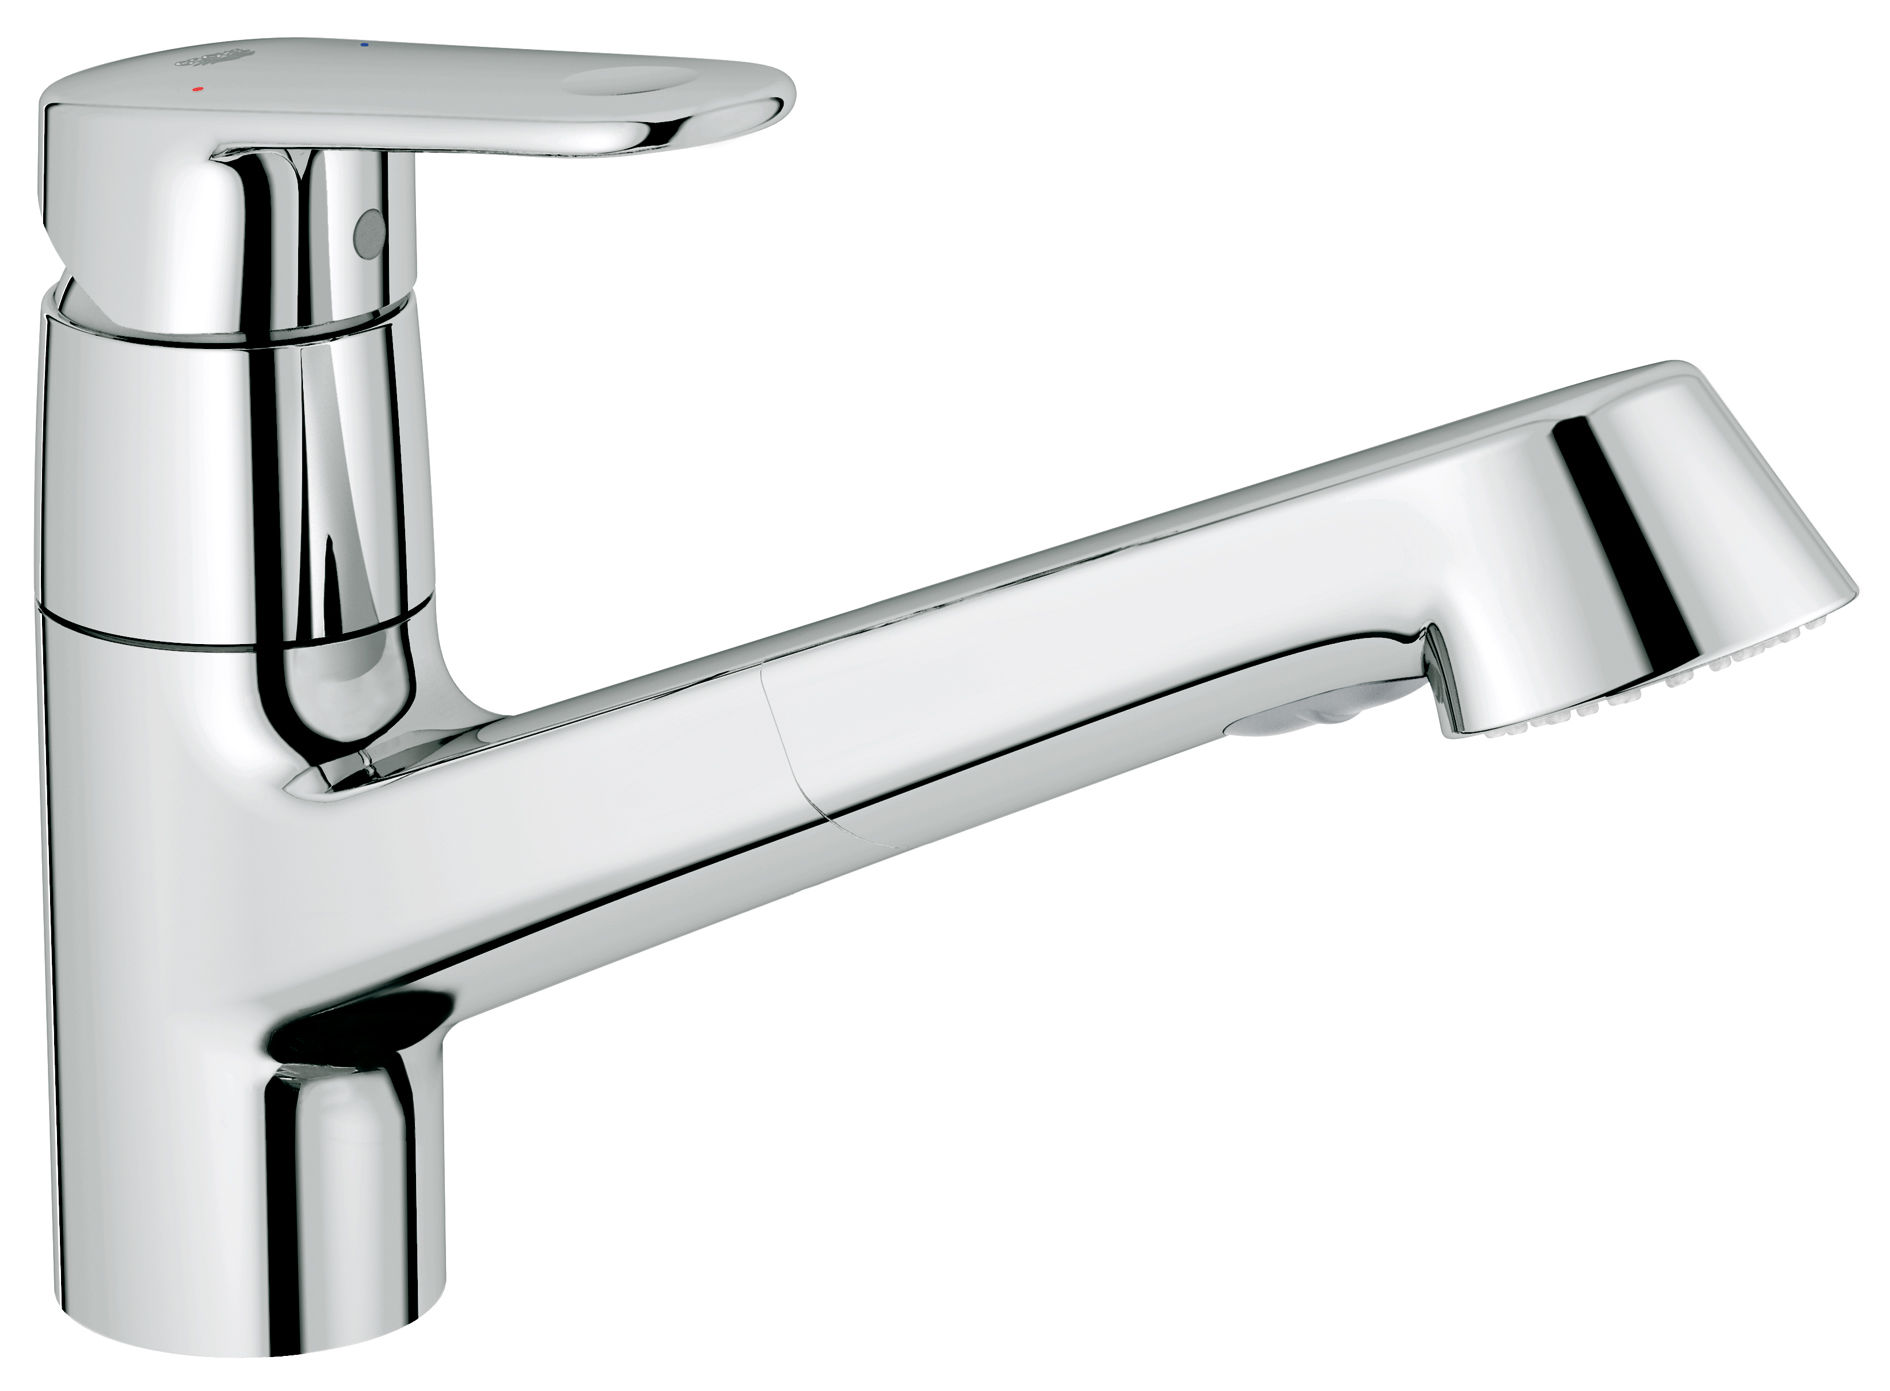 Grohe K4 Kitchen Faucet Grohe Kitchen Faucets Faucetcom